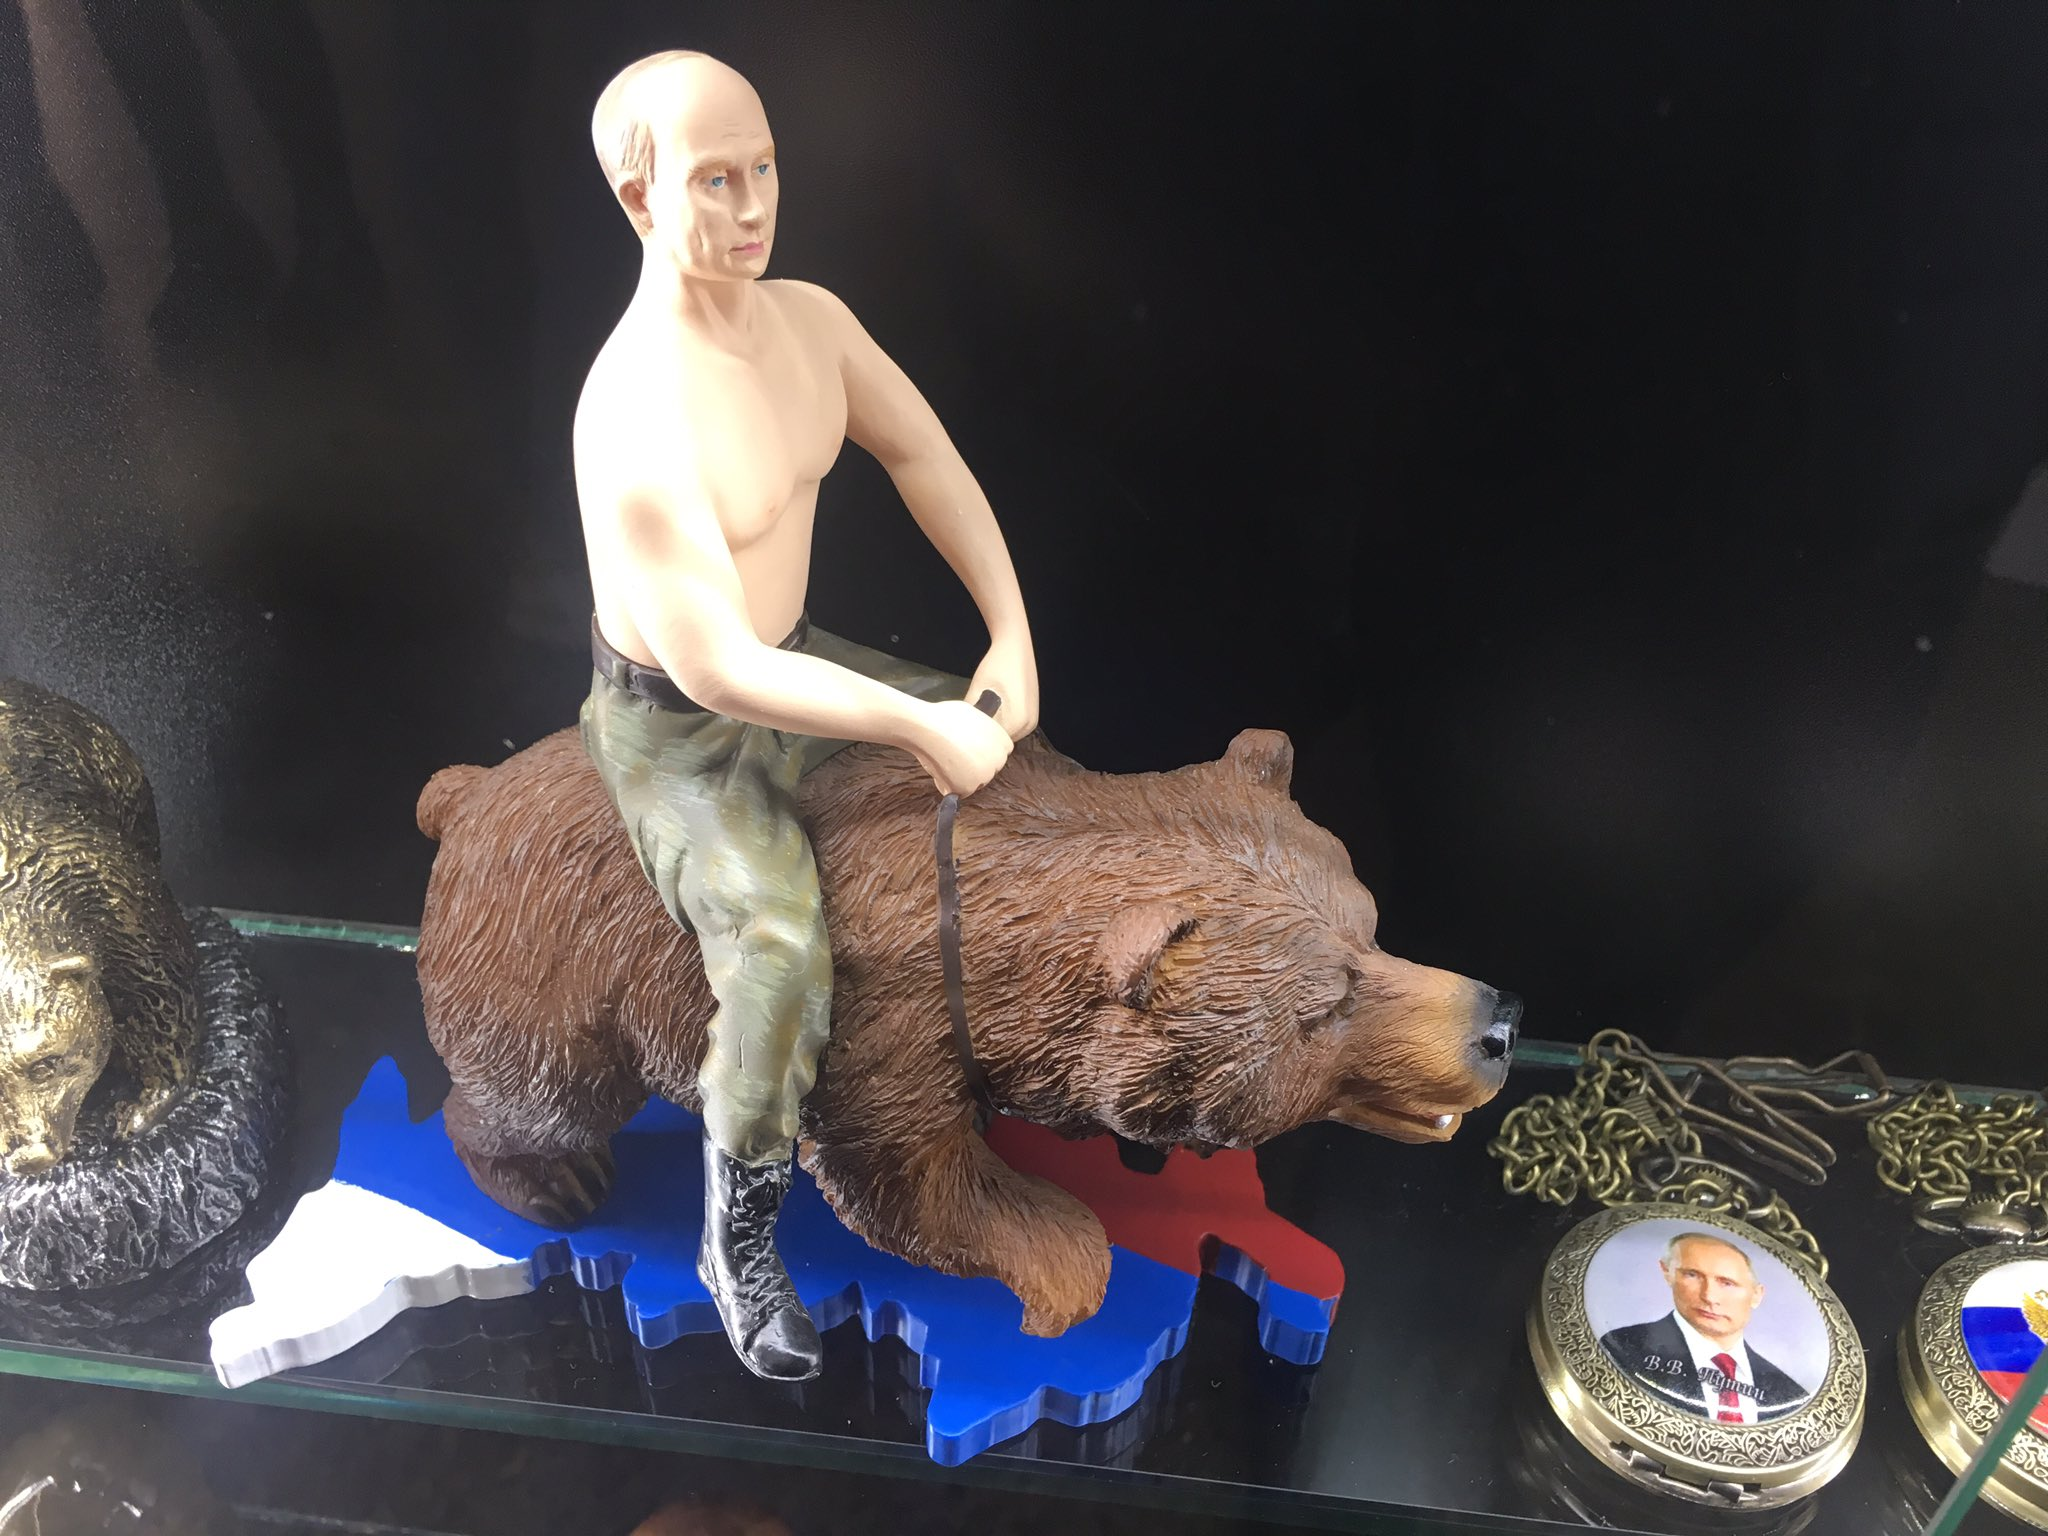 From Russia with love. Putin/bear souvenir on sale in Moscow today. https://t.co/NVAMP64aYA